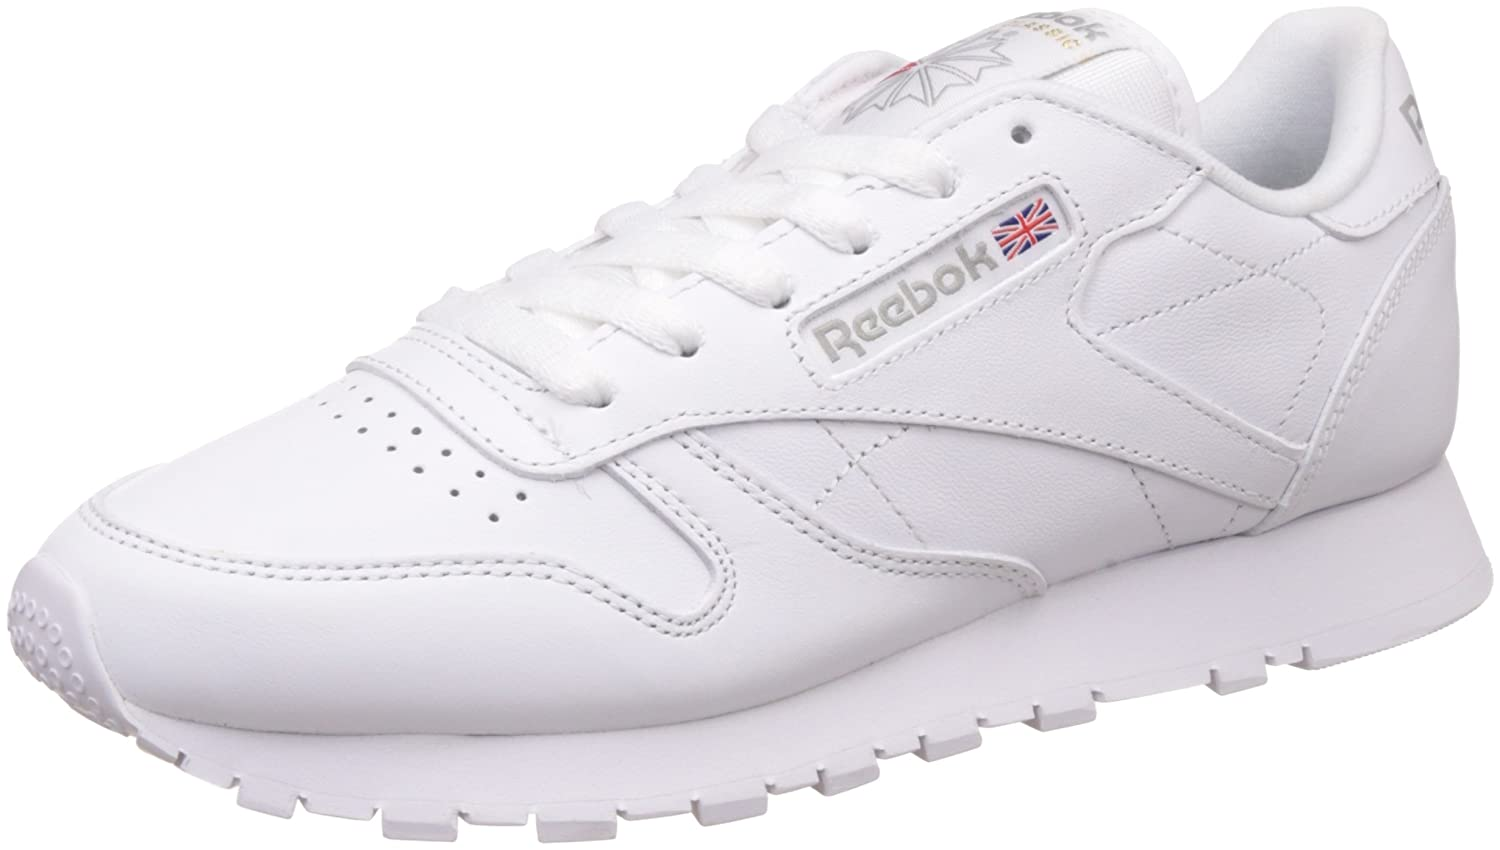 90937e35b8b5d7 Reebok Classic Leather Women s Trail Running Shoes  Amazon.co.uk  Shoes    Bags